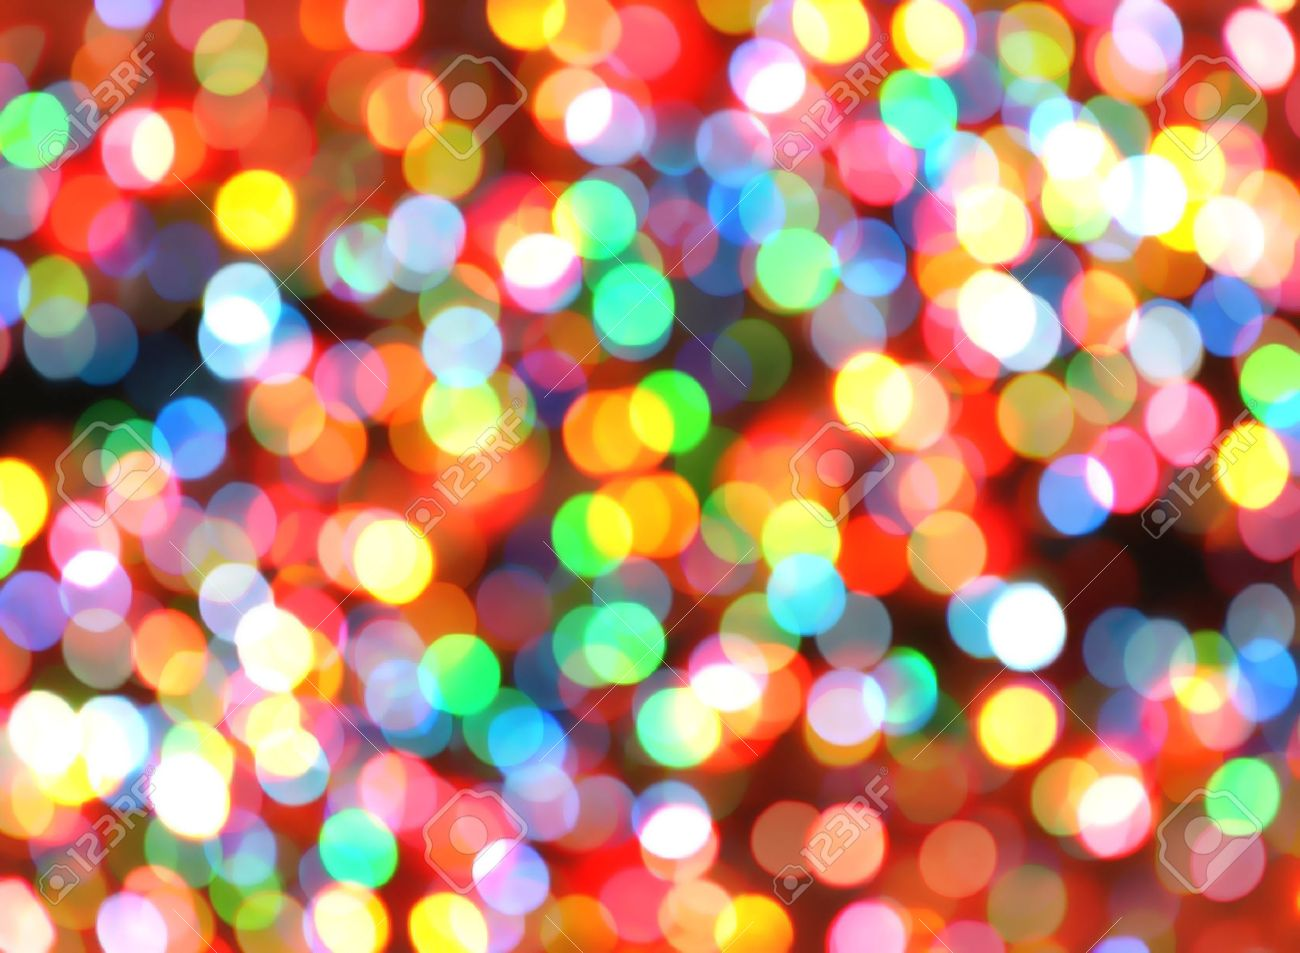 bright, colorful, rainbow lights are blurred and shiny. makes